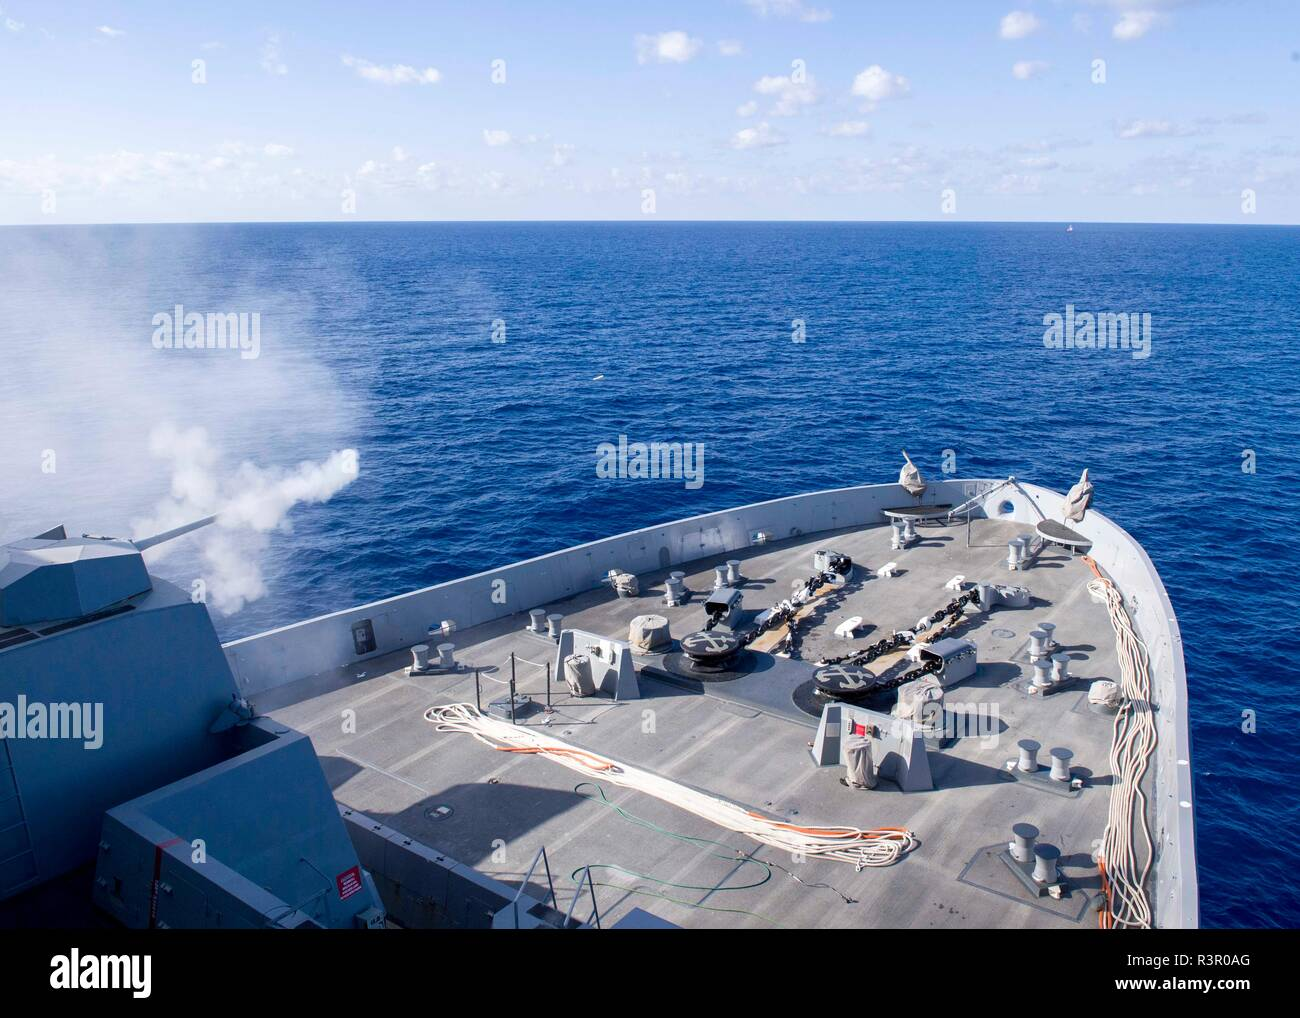 181109-N-PH222-1125 MEDITERRANEAN SEA (Nov. 9, 2018) The San Antonio-class amphibious transport dock ship USS Anchorage (LPD 23) fires its Mark 46-30mm gun during a live-fire exercise in the Mediterranean Sea, Nov. 9, 2018. Anchorage and embarked 13th Marine Expeditionary Unit are deployed to the U.S. 6th Fleet area of operations as a crisis response force in support of regional partners as well as to promote U.S. national security interests in Europe and Africa. (U.S. Navy photo by Mass Communication Specialist 3rd Class Ryan M. Breeden/Released) - Stock Image